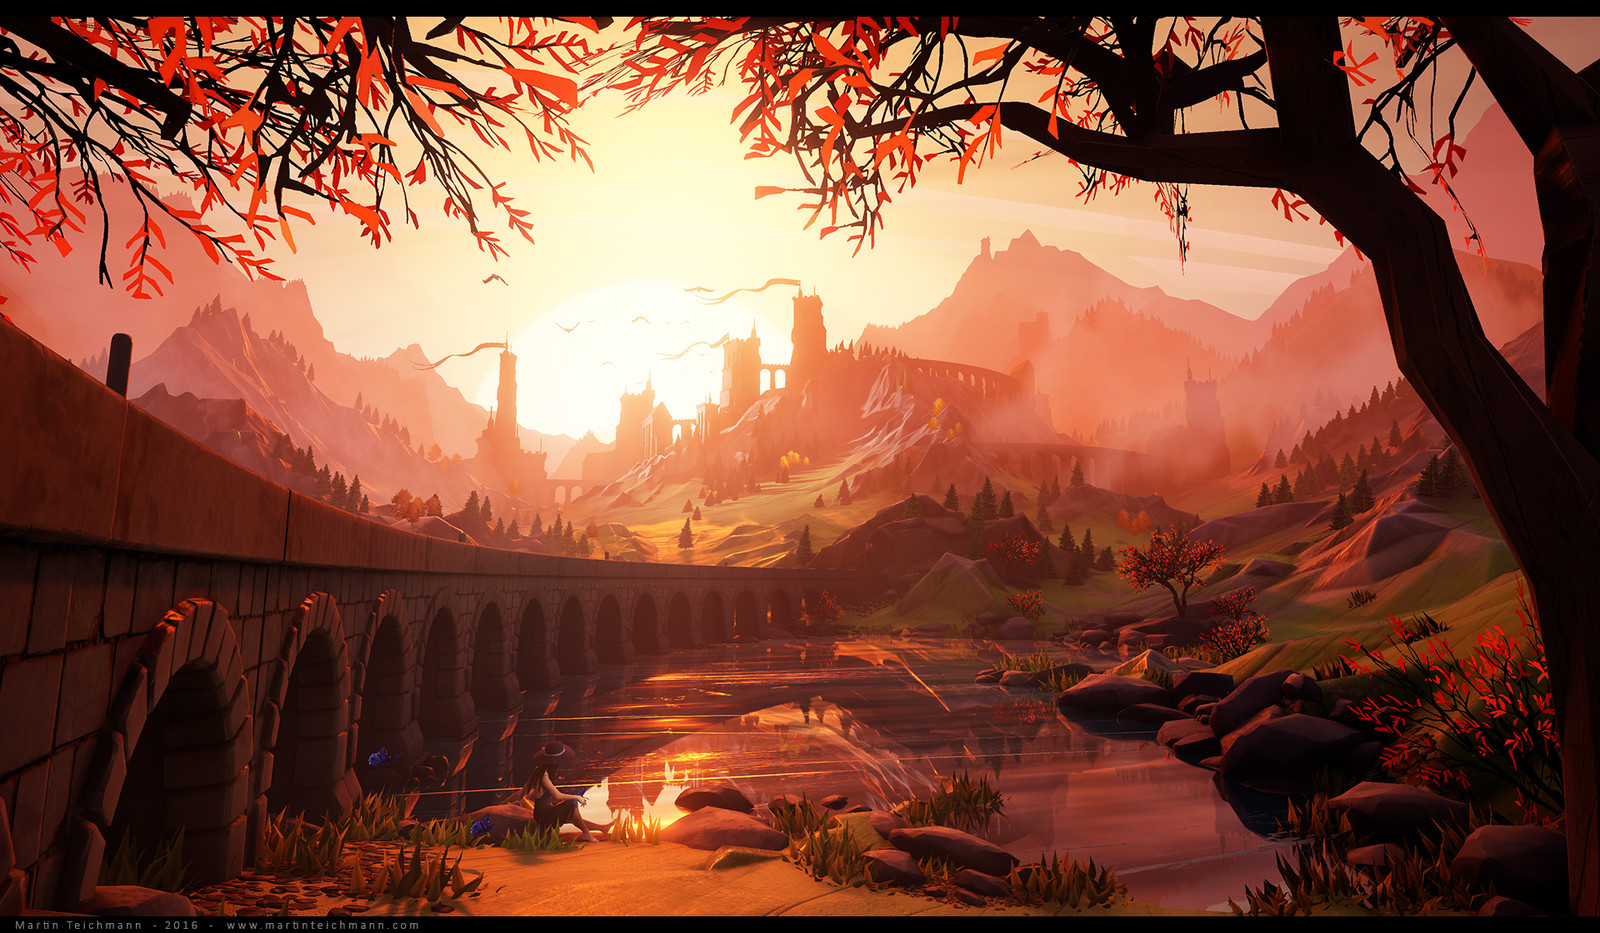 Sunrise - Stylized landscape in Unreal 4